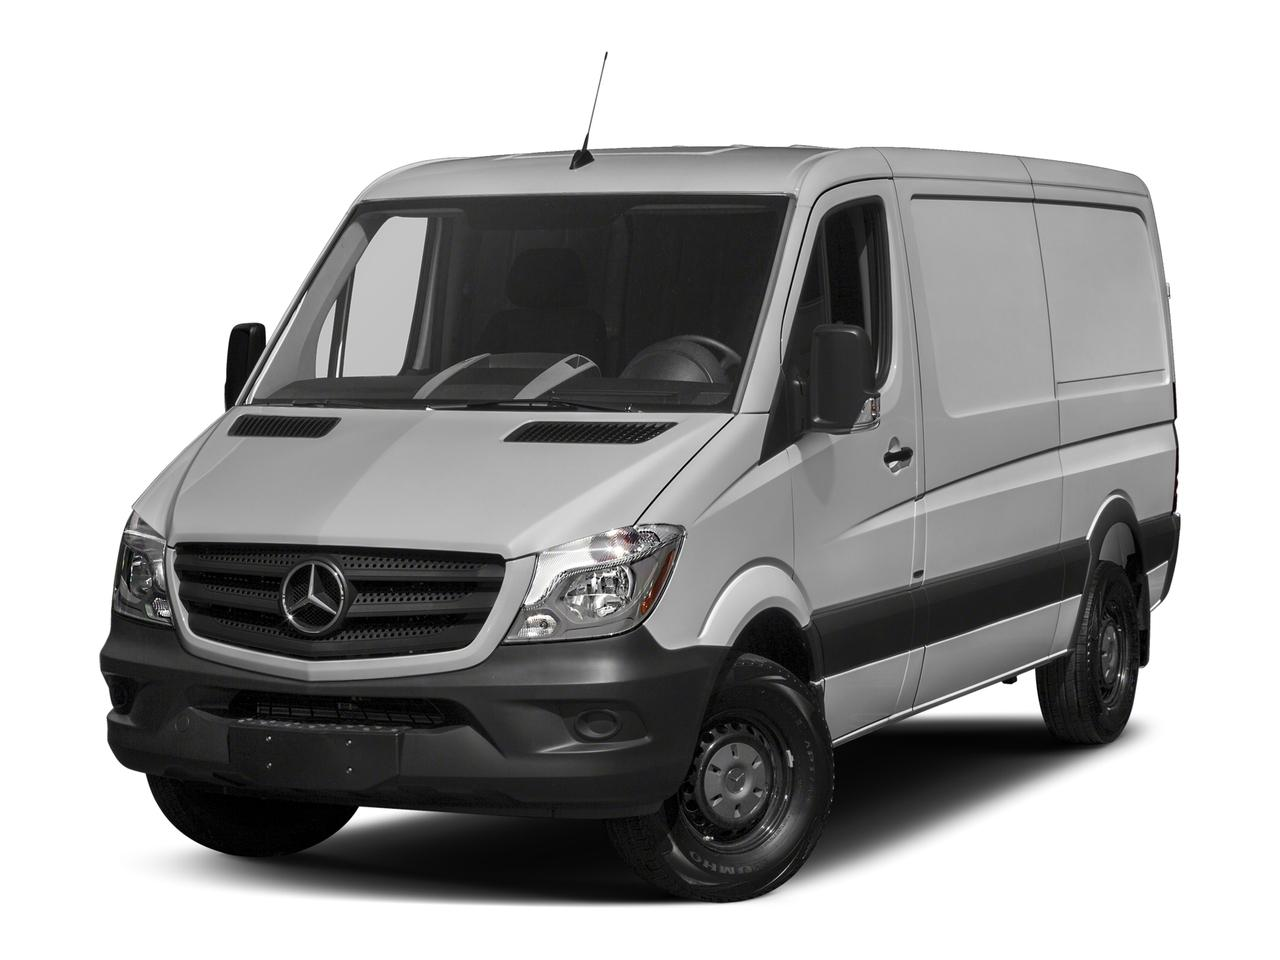 2018 Mercedes-Benz Sprinter Cargo Van Vehicle Photo in Avon, CT 06001